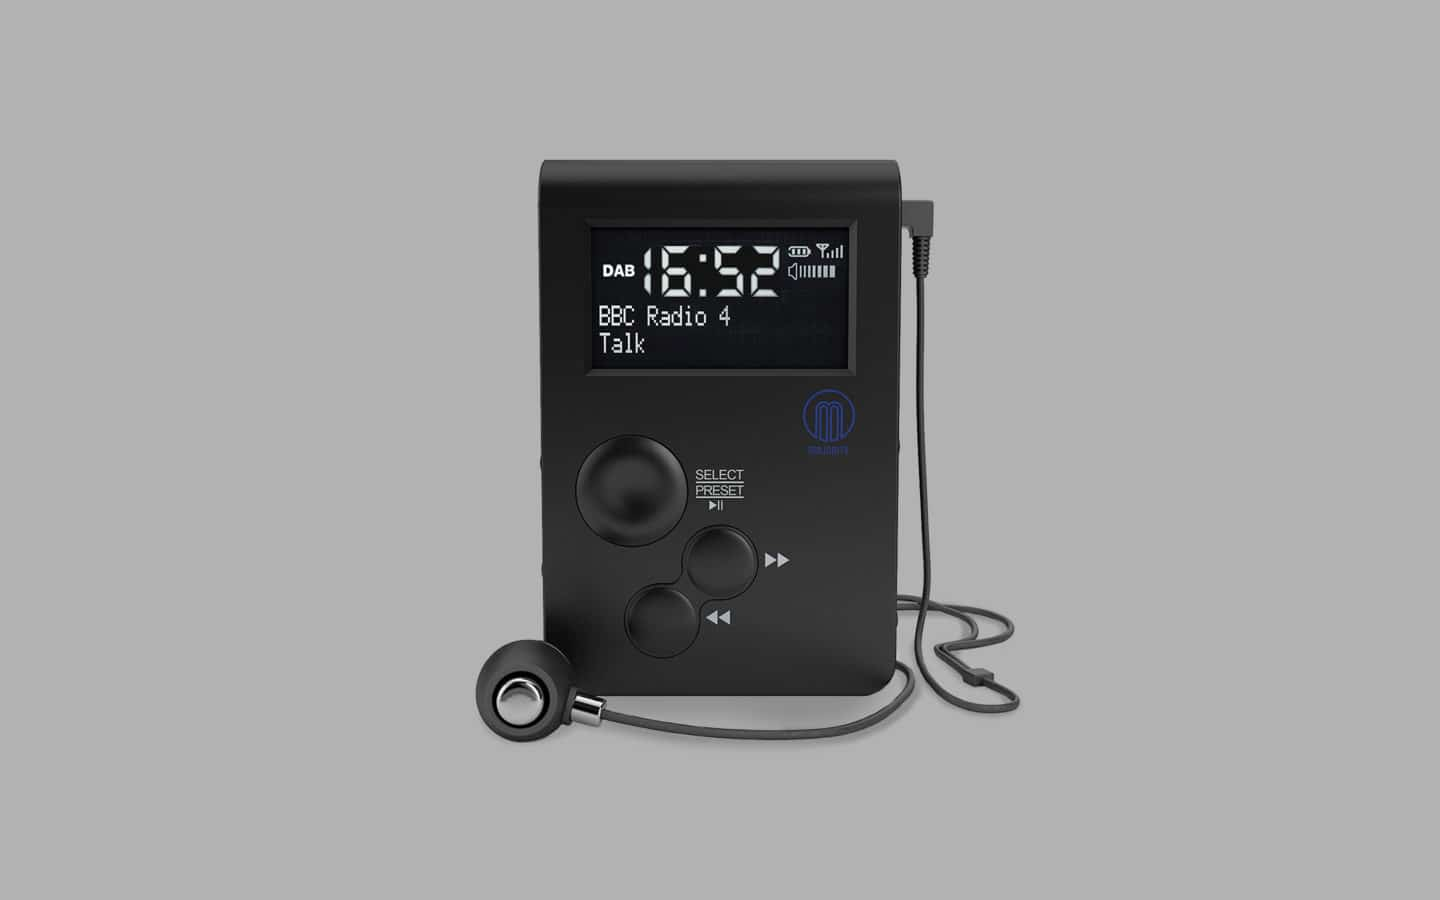 Best Rechargeable DAB Radio 3